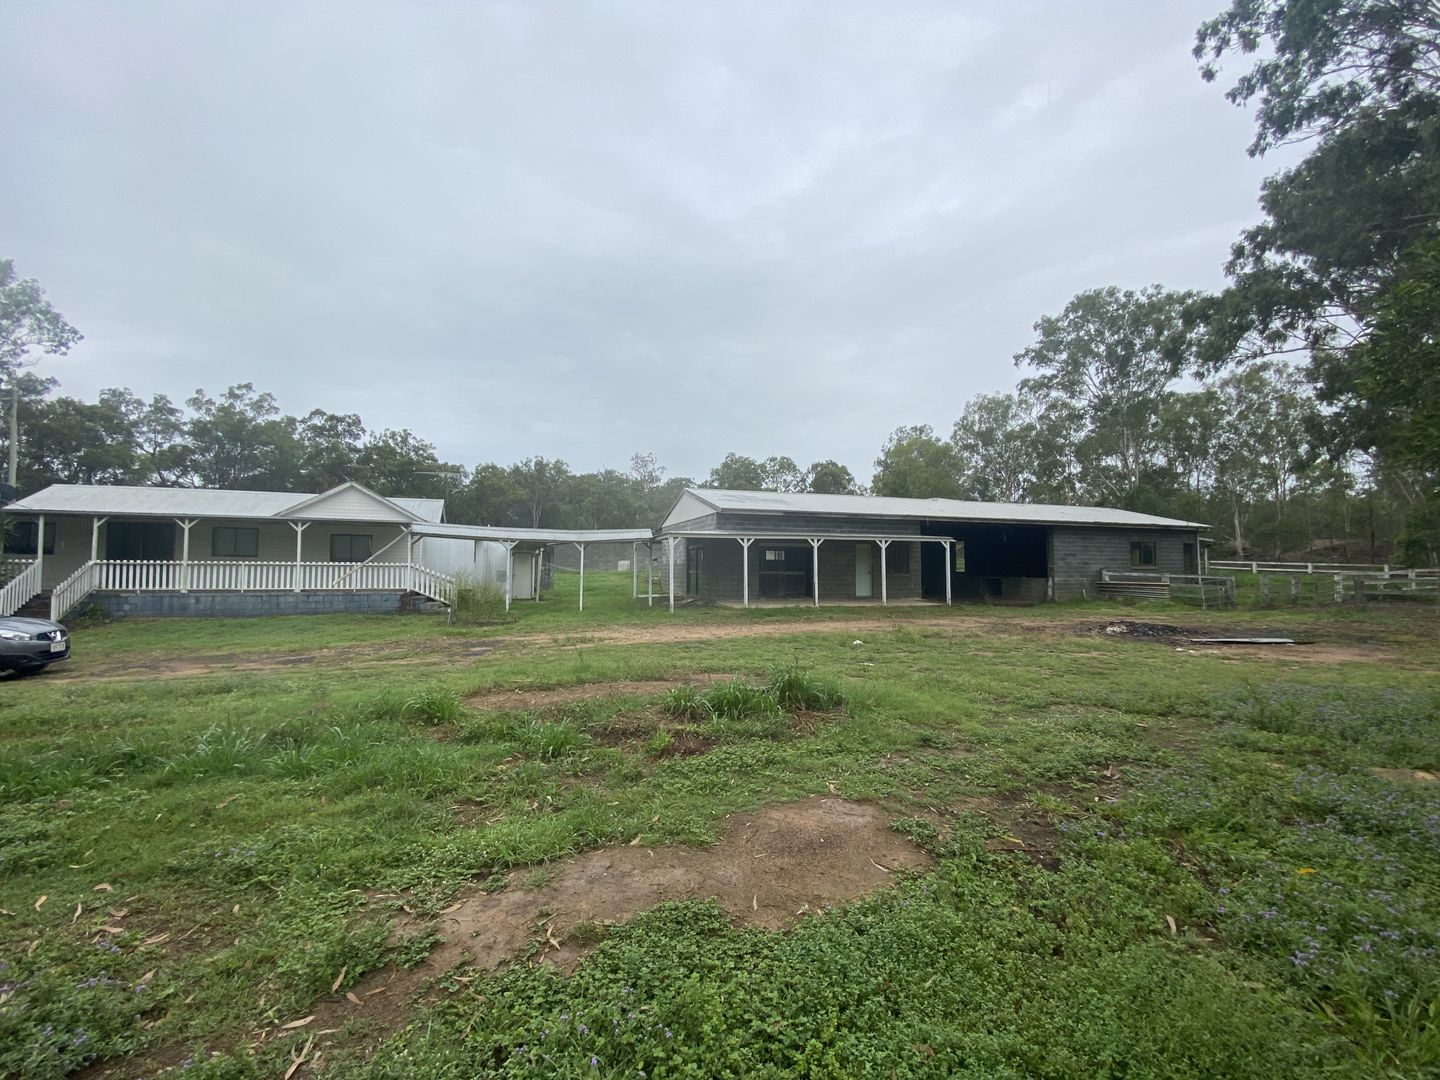 172 Pine Mountain Quarry Rd, Pine Mountain QLD 4306, Image 0